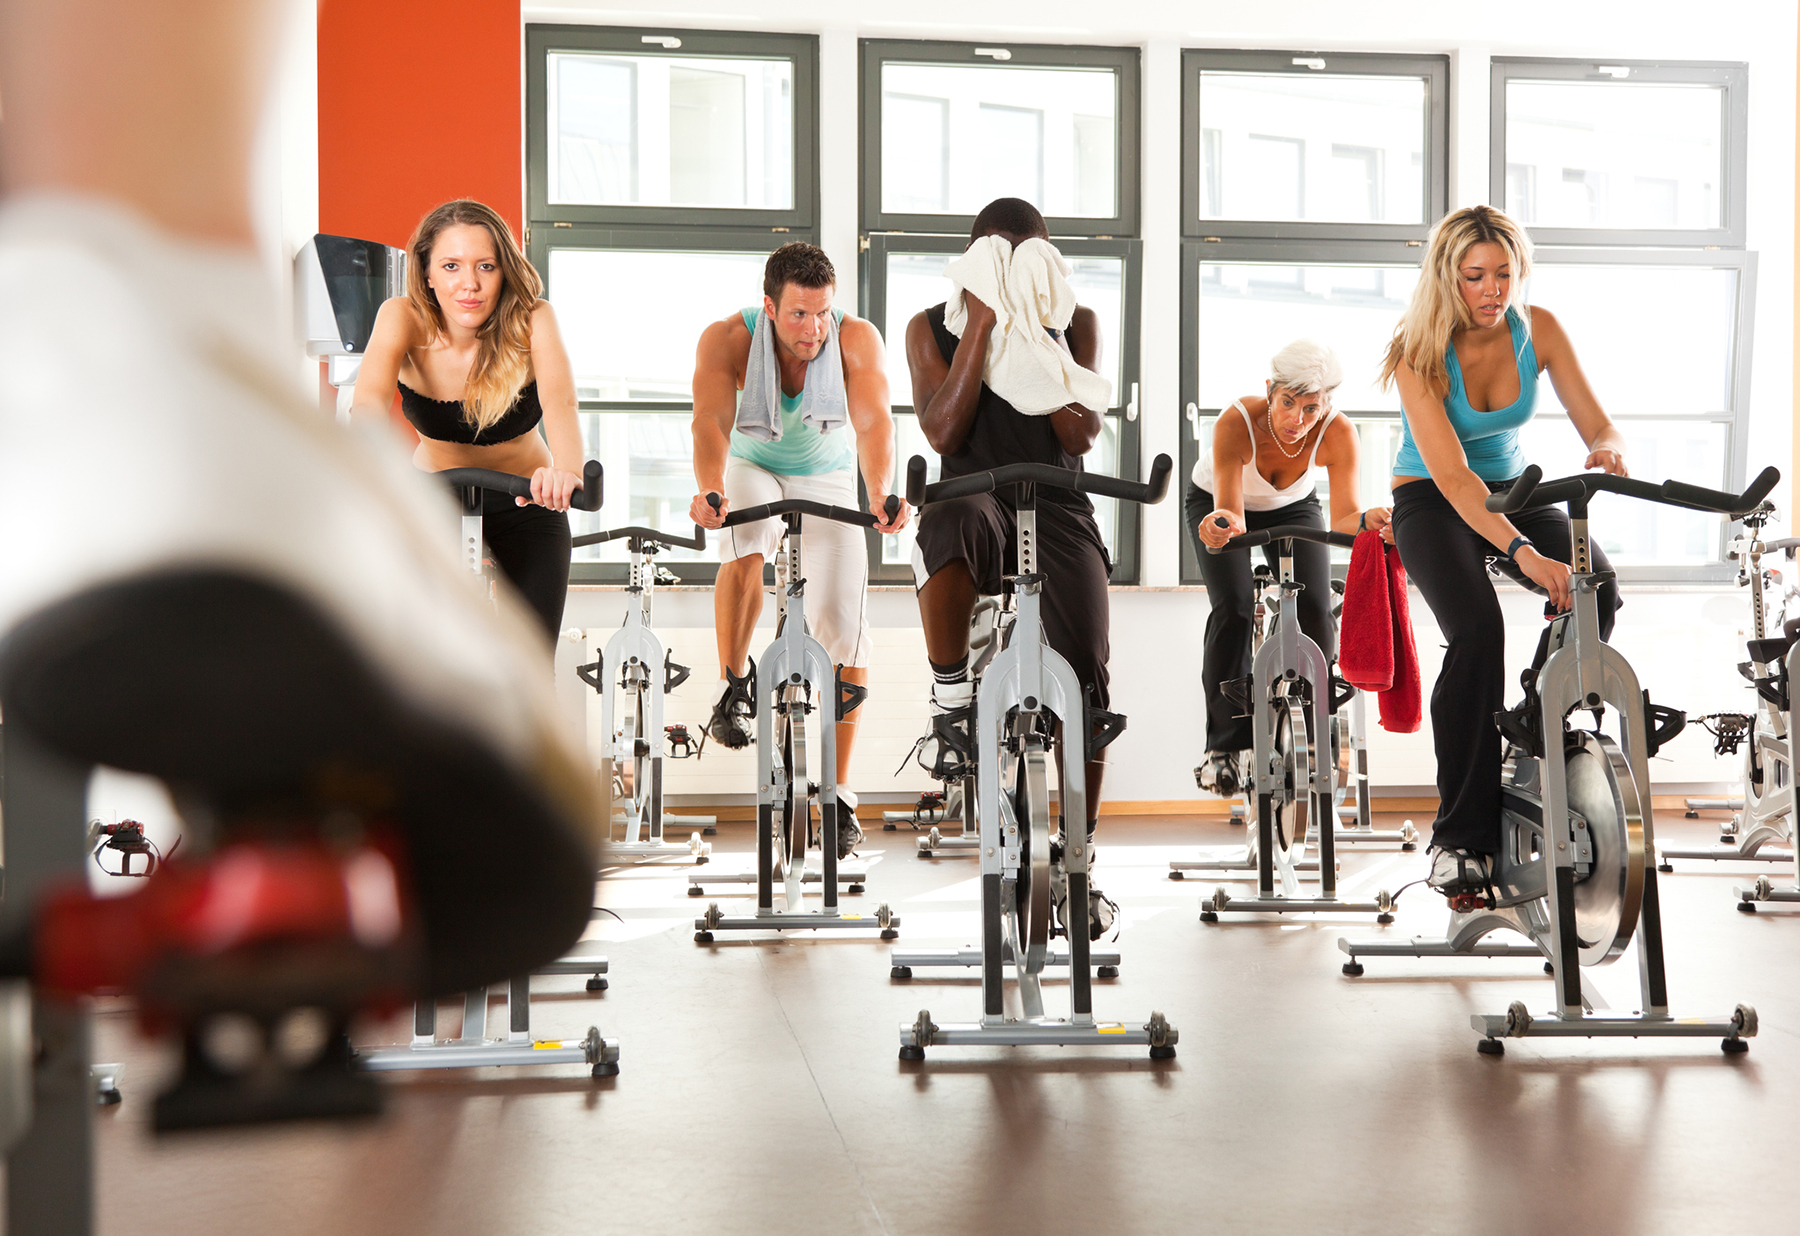 cb0e5b248 Spin Class  What to Know Before You Go